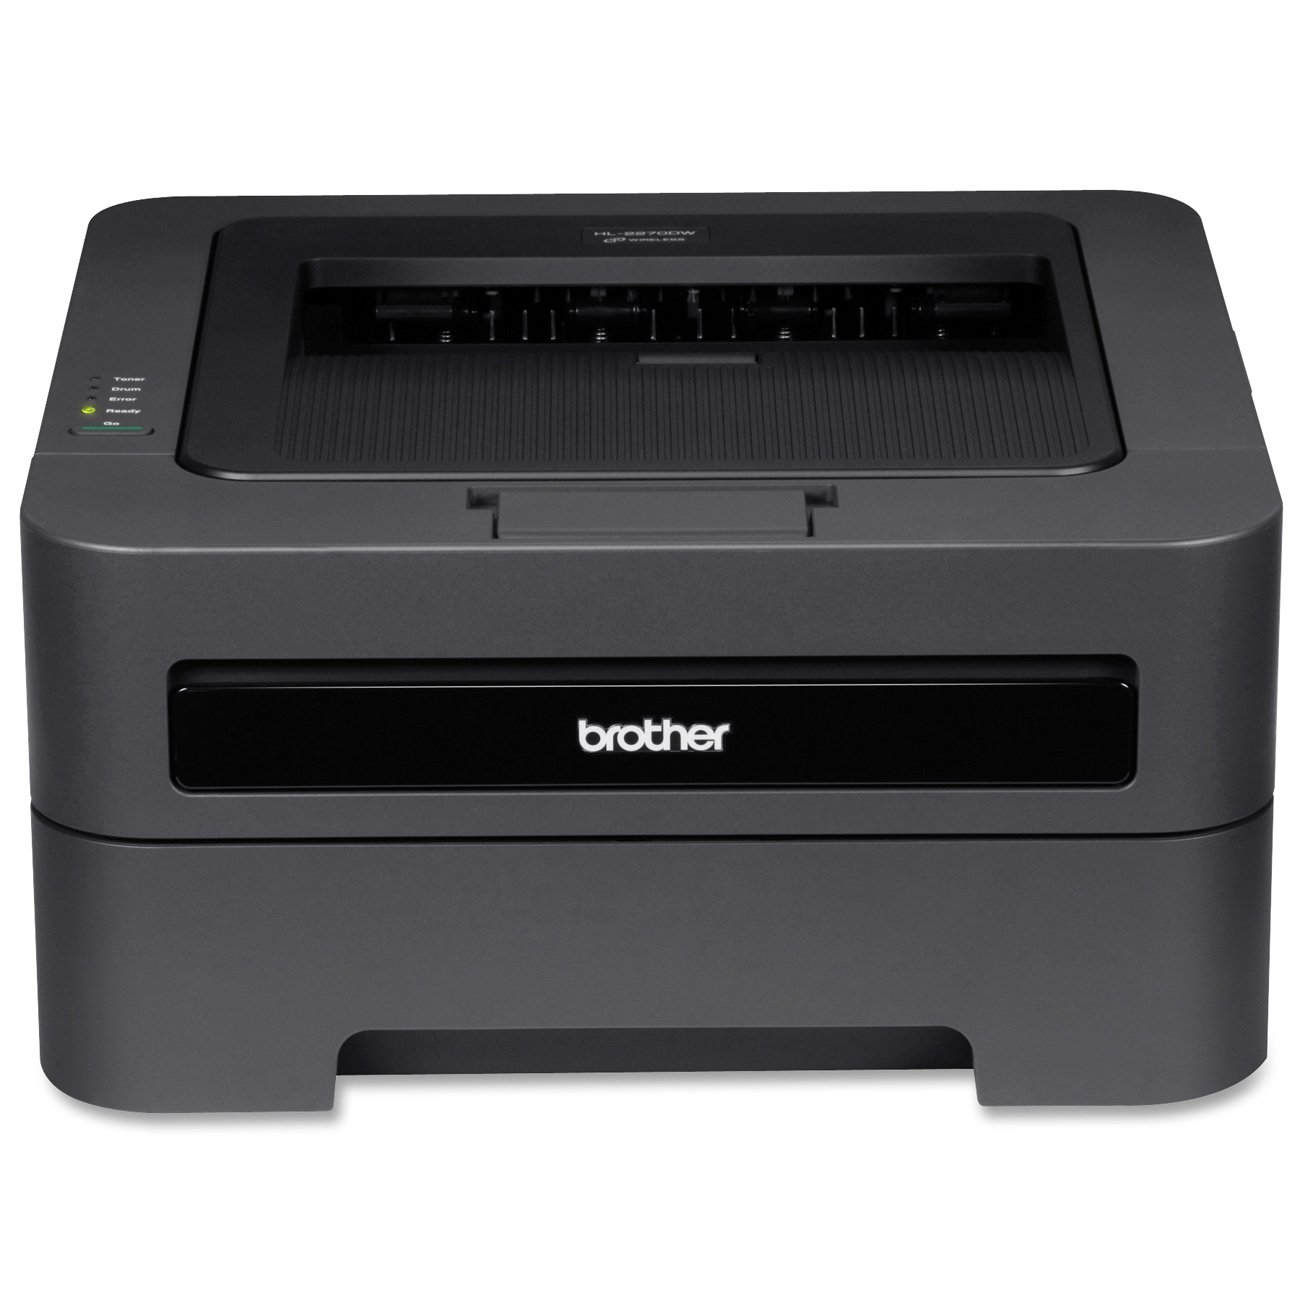 Amazon - Brother HL-2270DW Compact Laser Printer with WiFi - $77.99